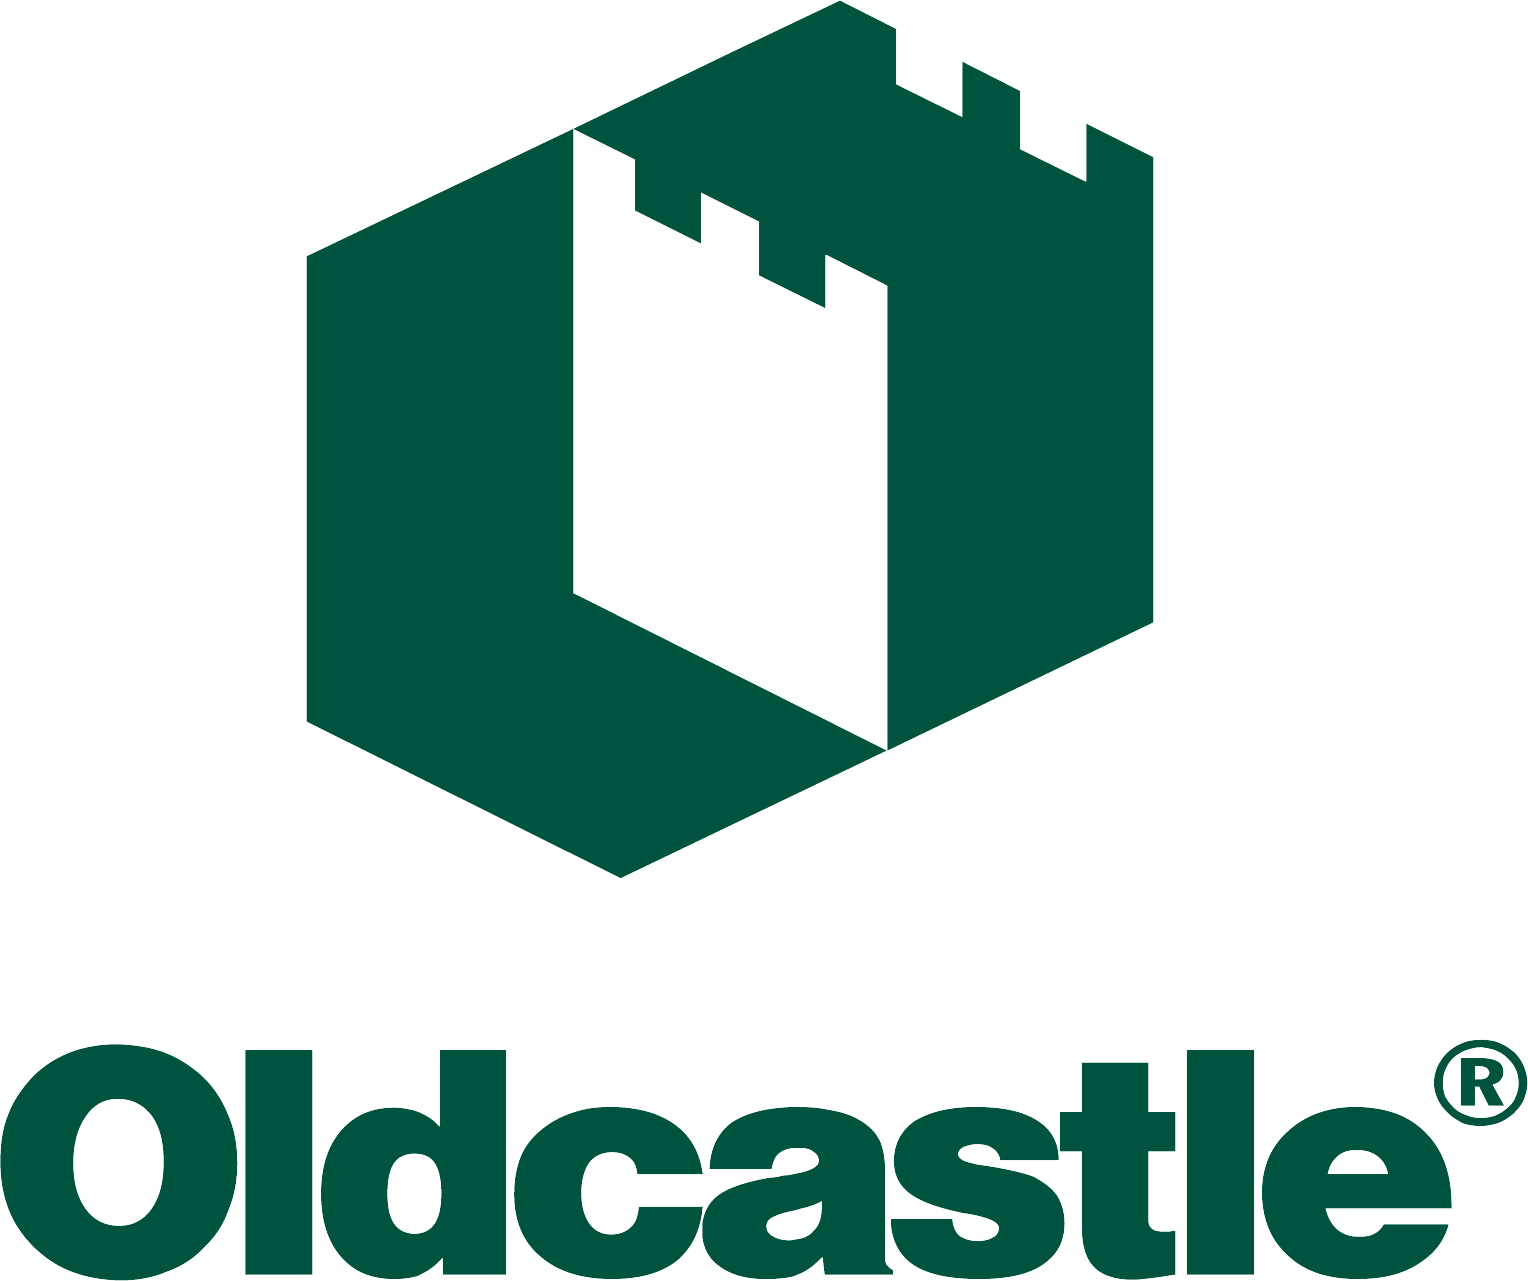 Oldcastle created mobile forms using GoFormz